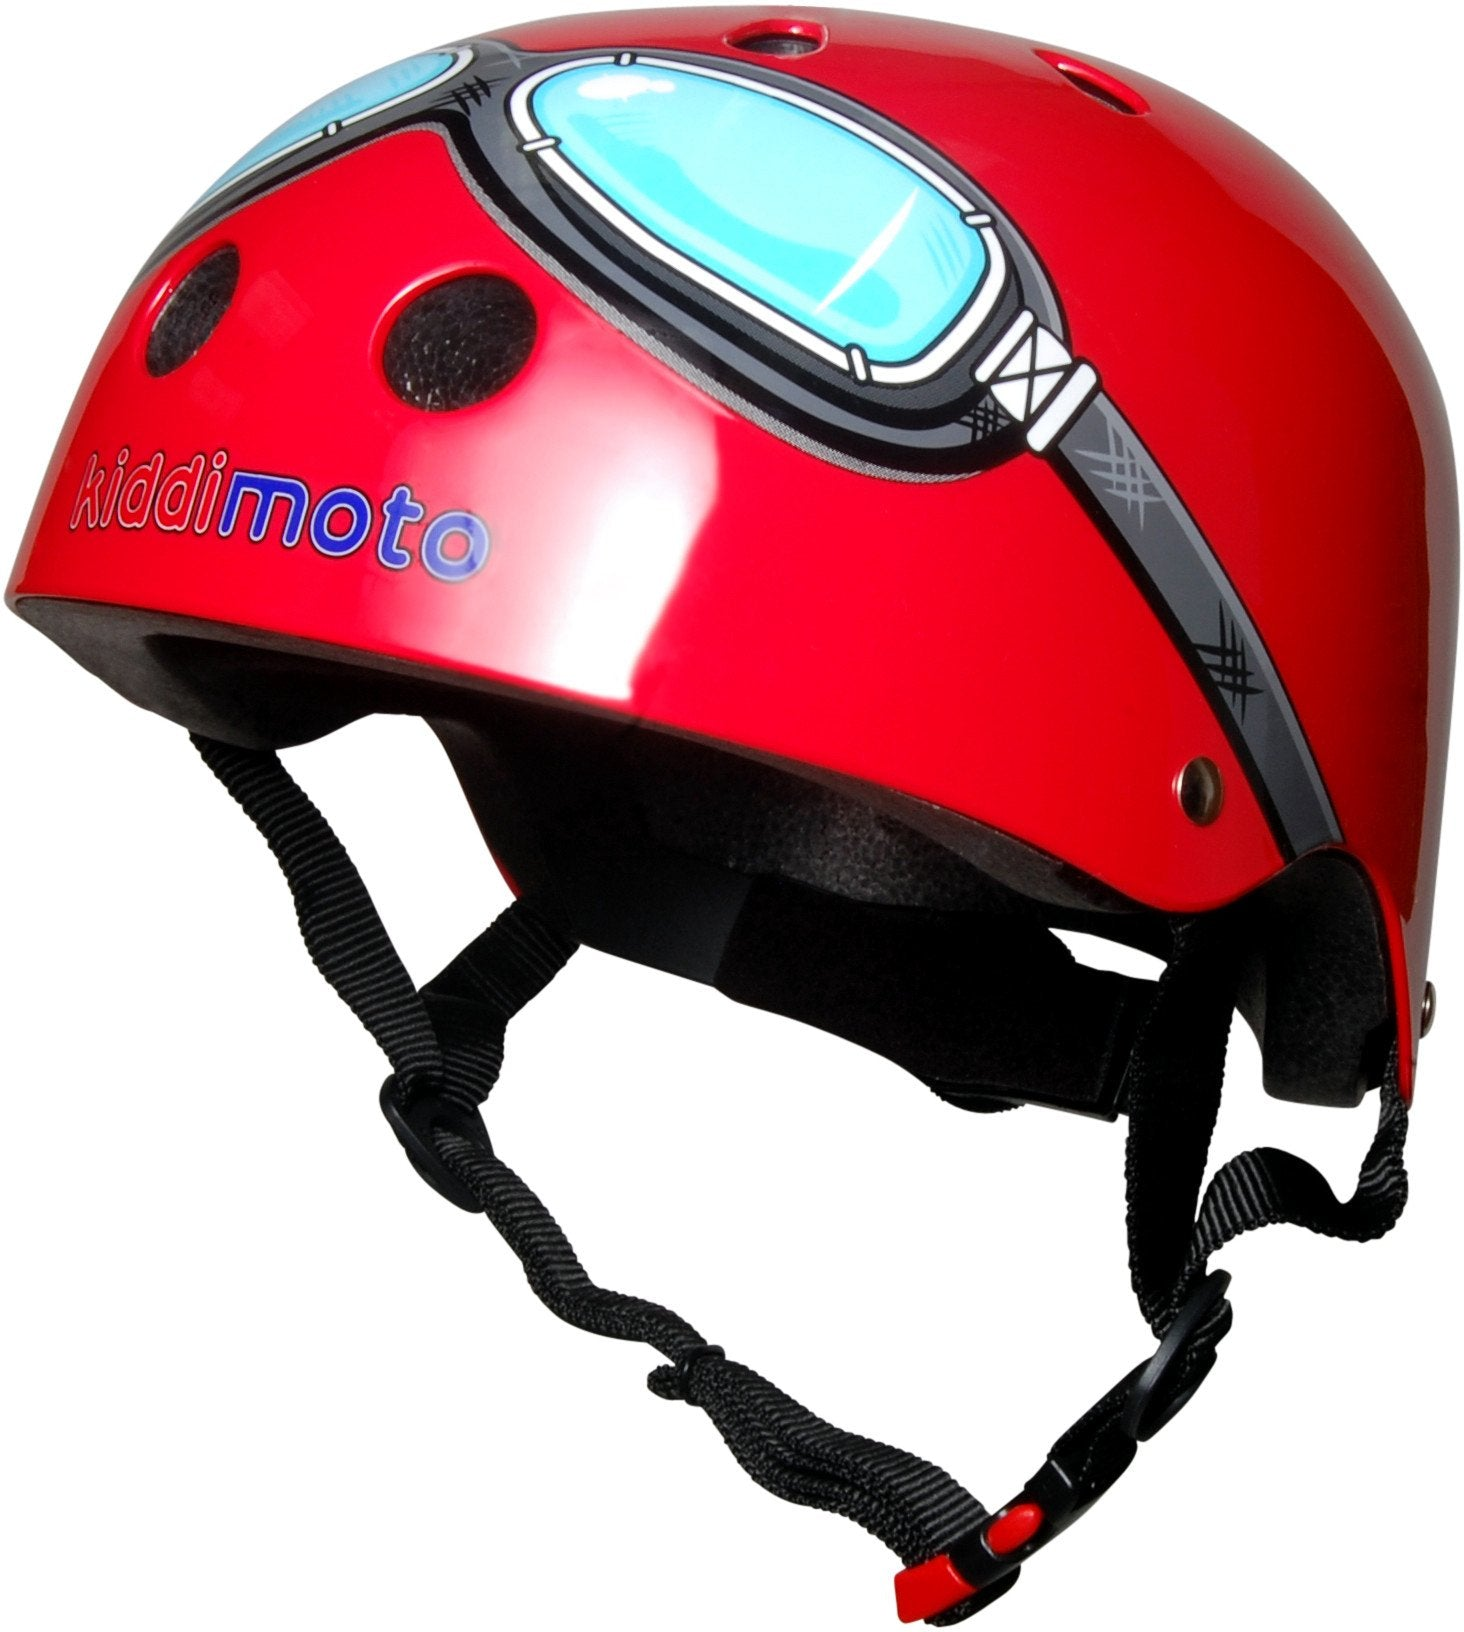 Our Red Goggle helmet features a grey pair of goggles with light blue lenses printed onto the helmet, with the Kiddimoto logo at the bottom